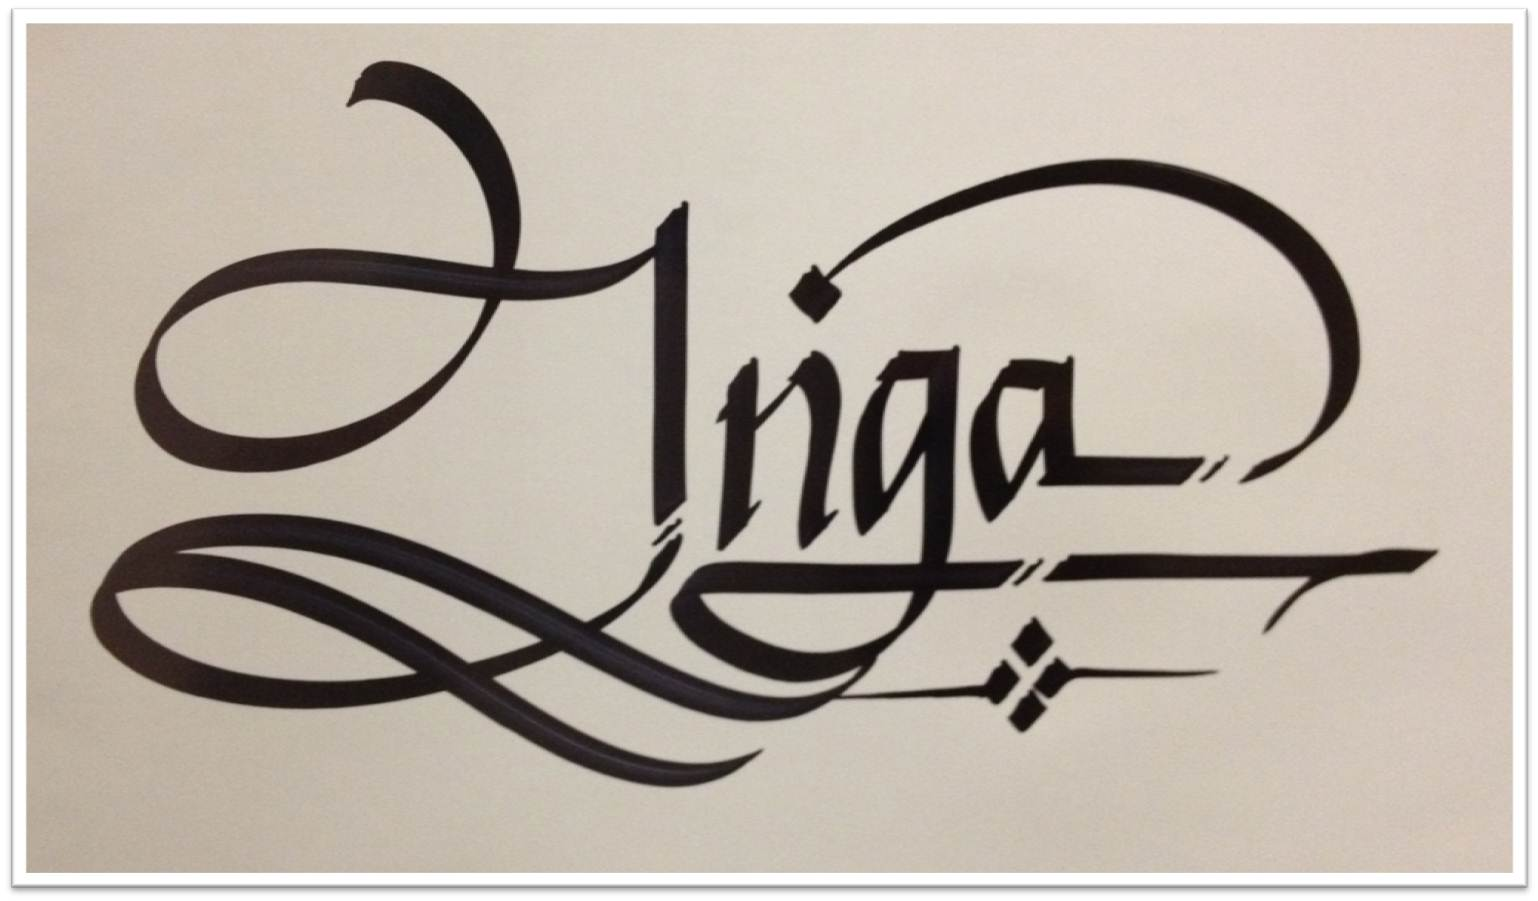 Calligraphy Art Russian Names In Calligraphy Inga